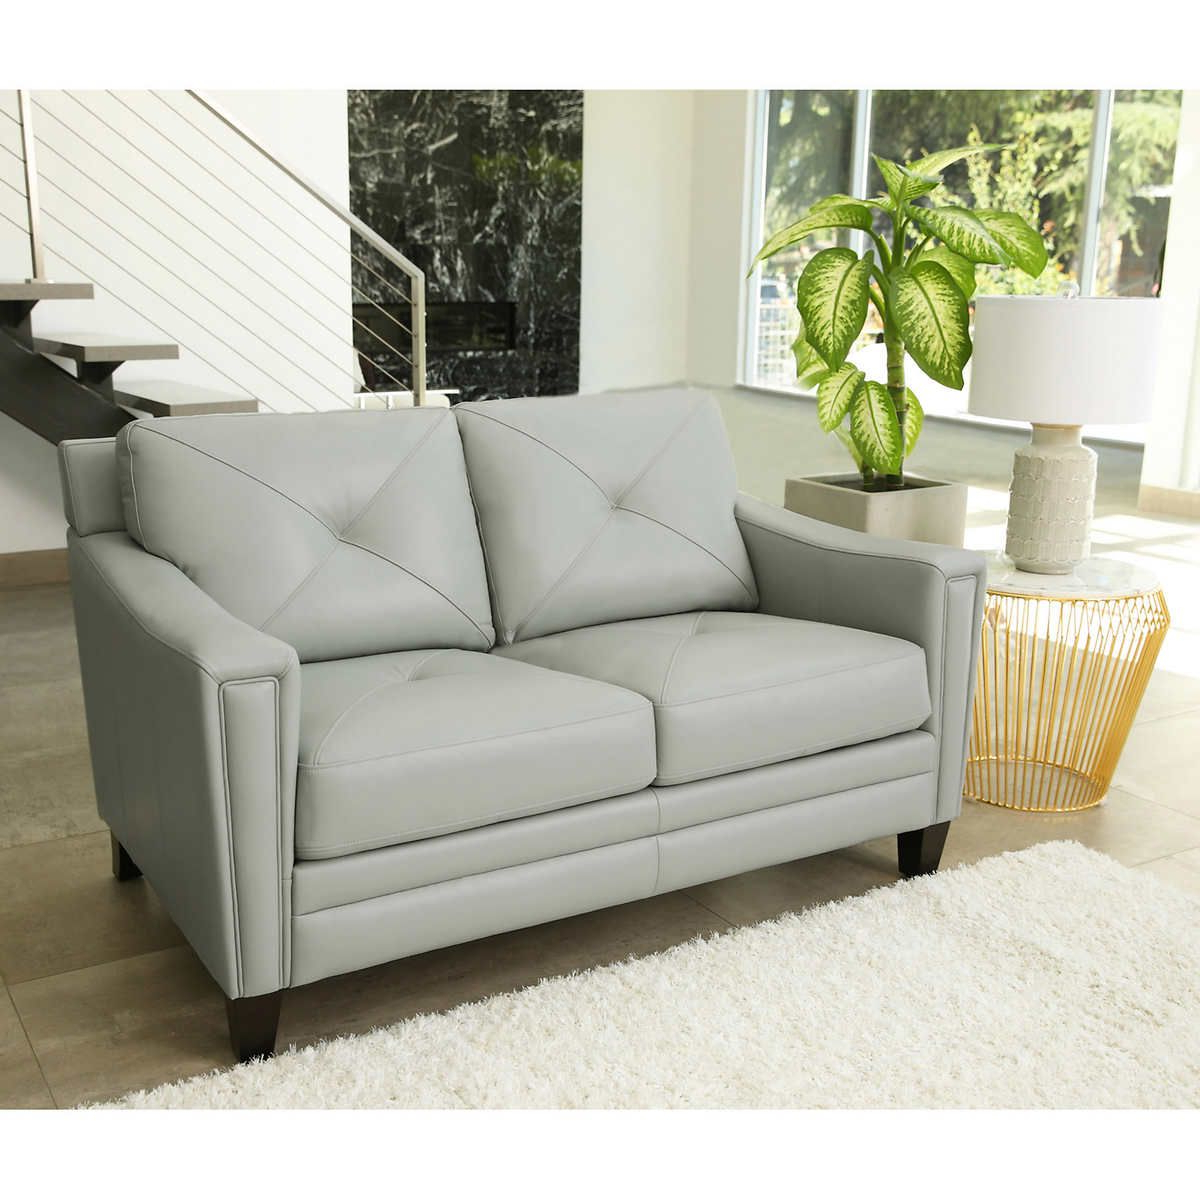 Top Grain Leather Sofa (View 12 of 20)